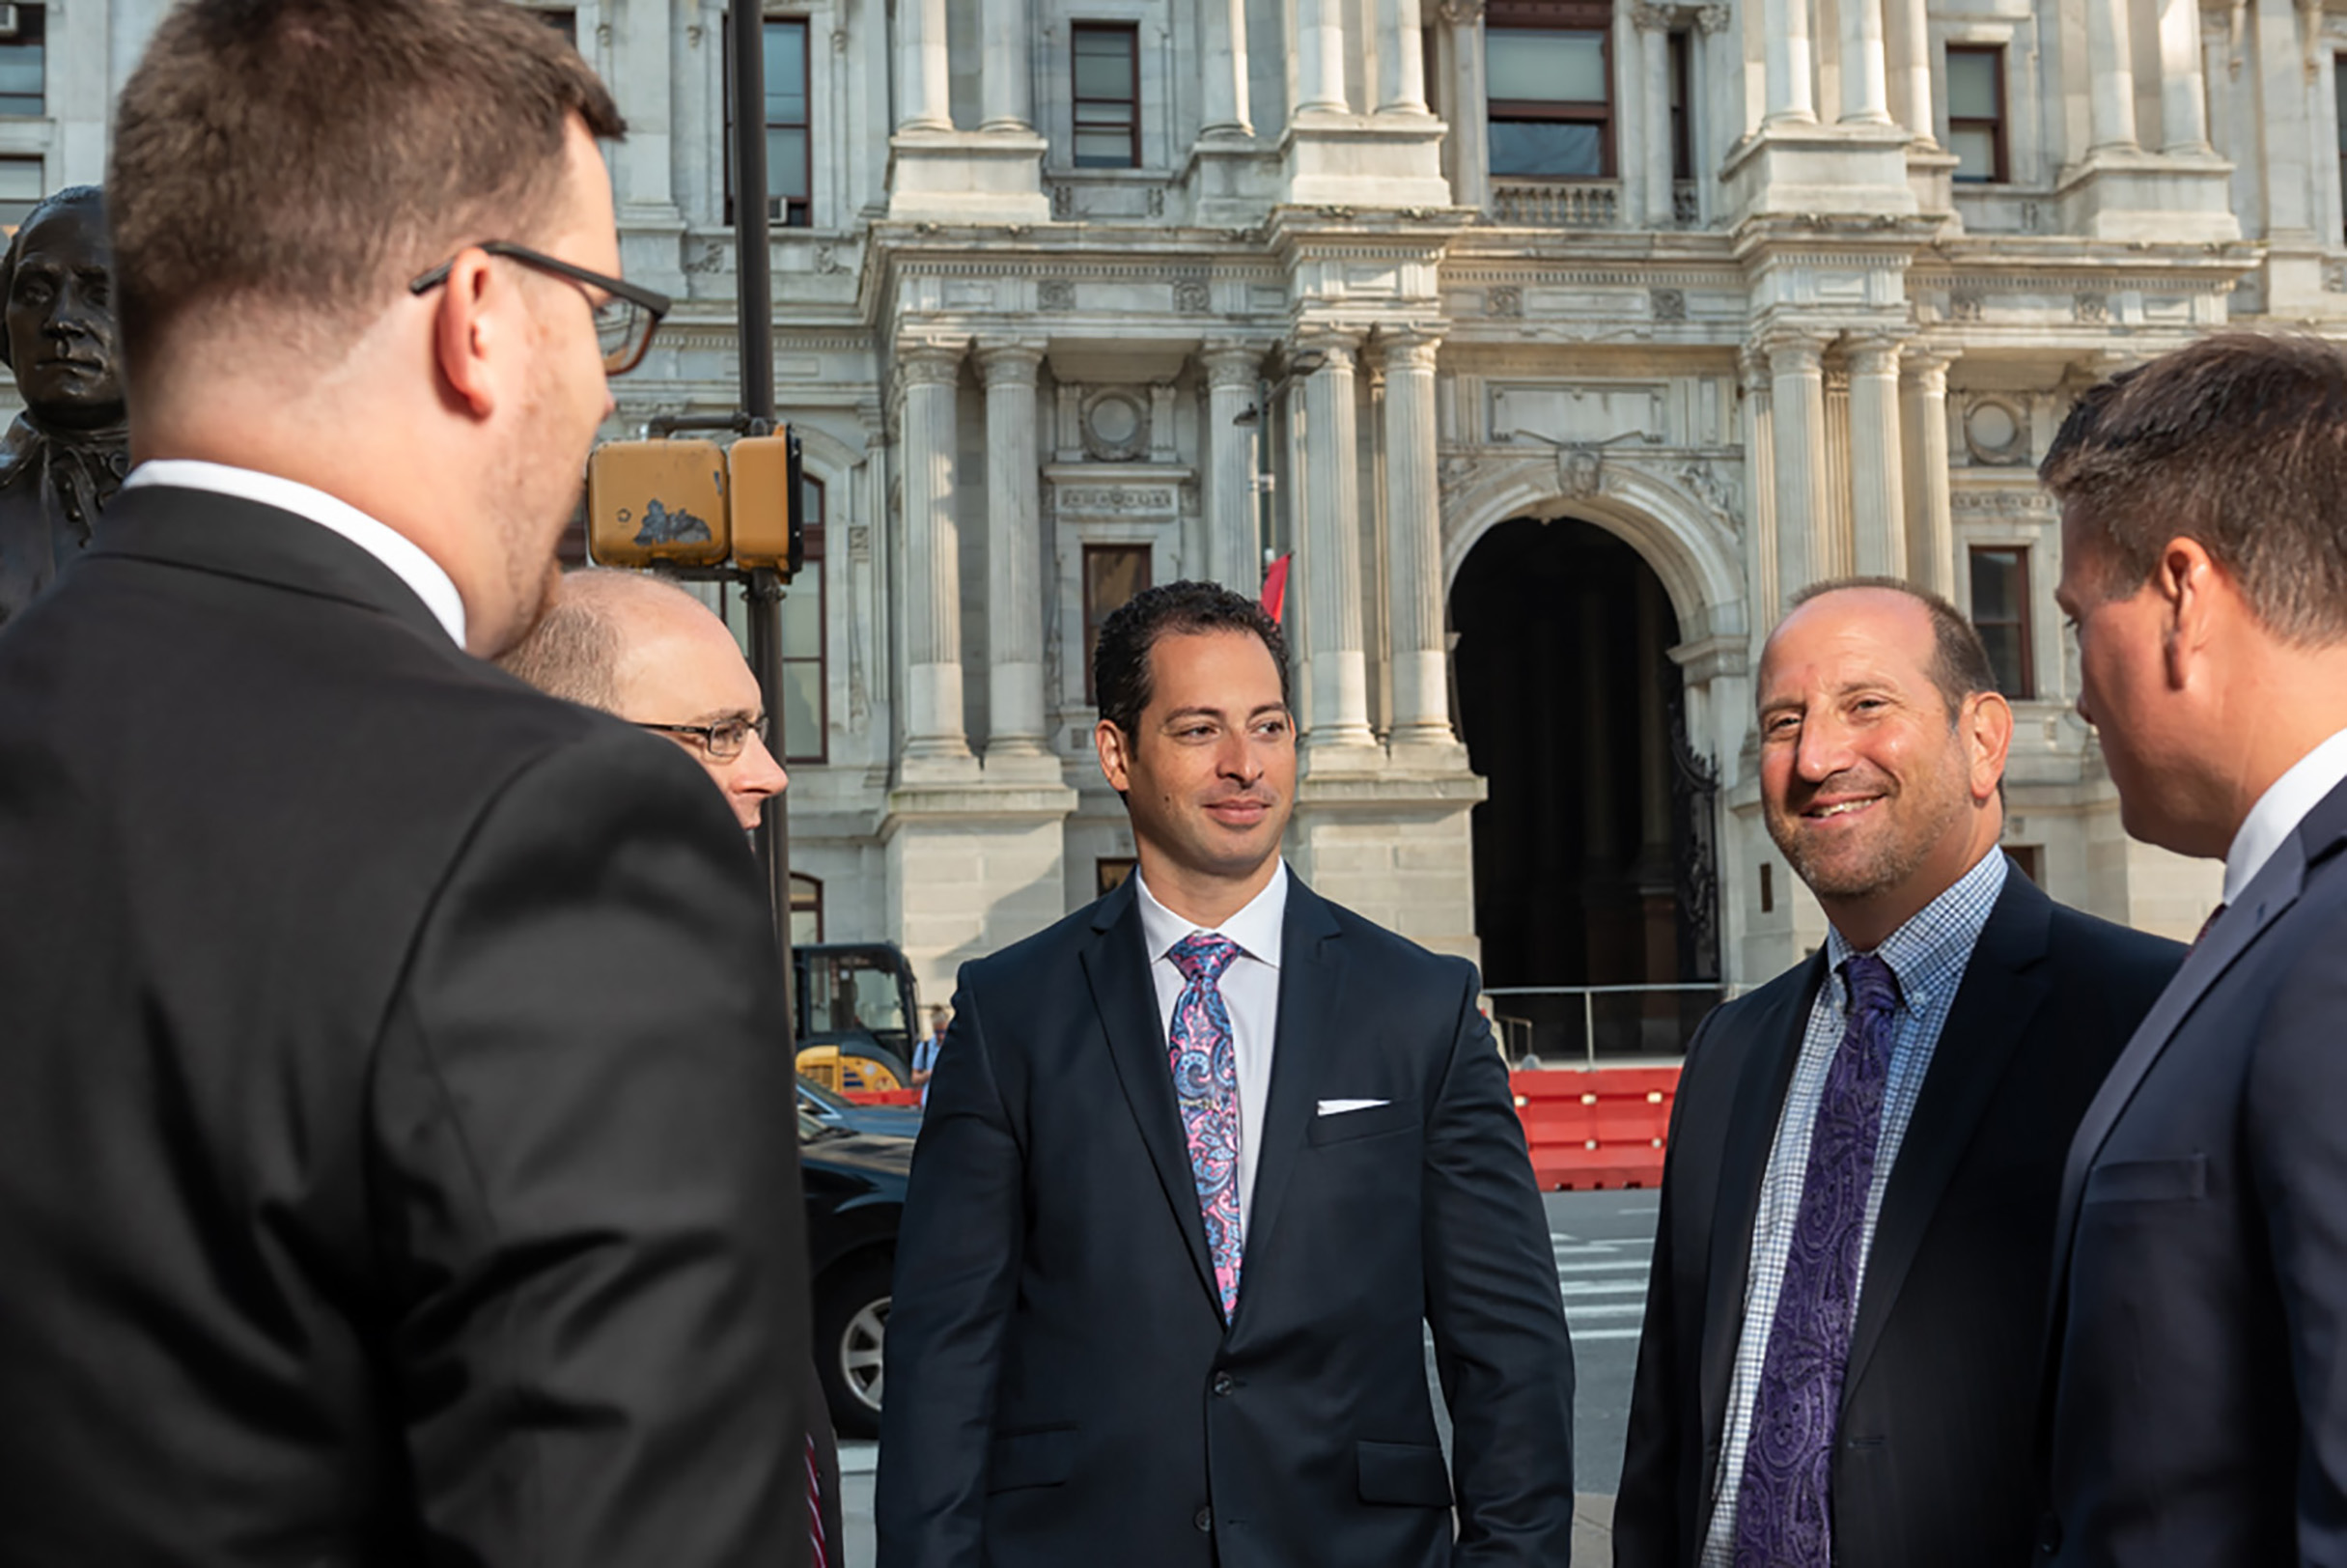 Spear greenfield attorneys talking in front of Philadelphia City Hall